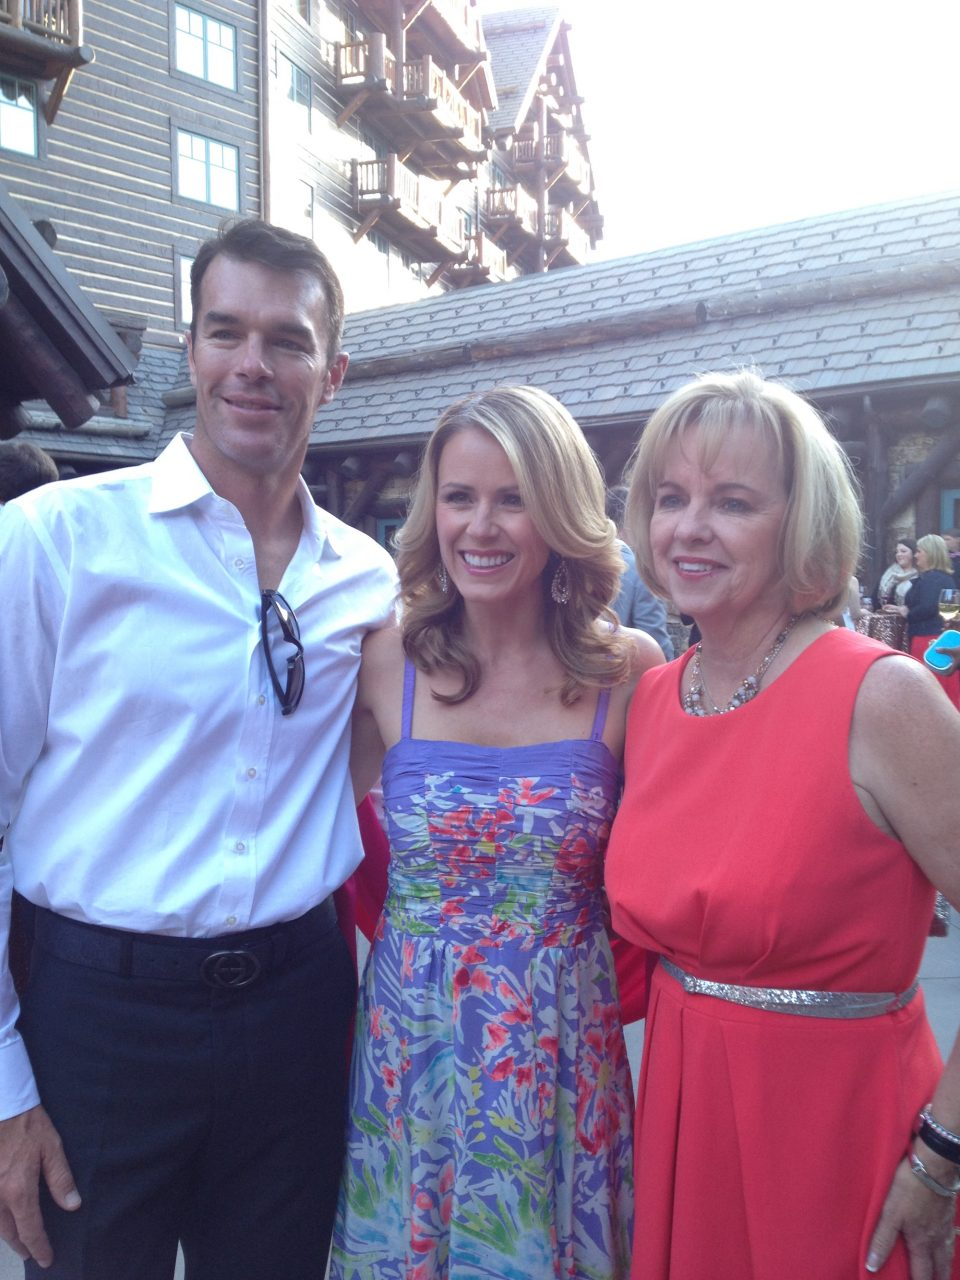 JoAnn with Ryan and Trista